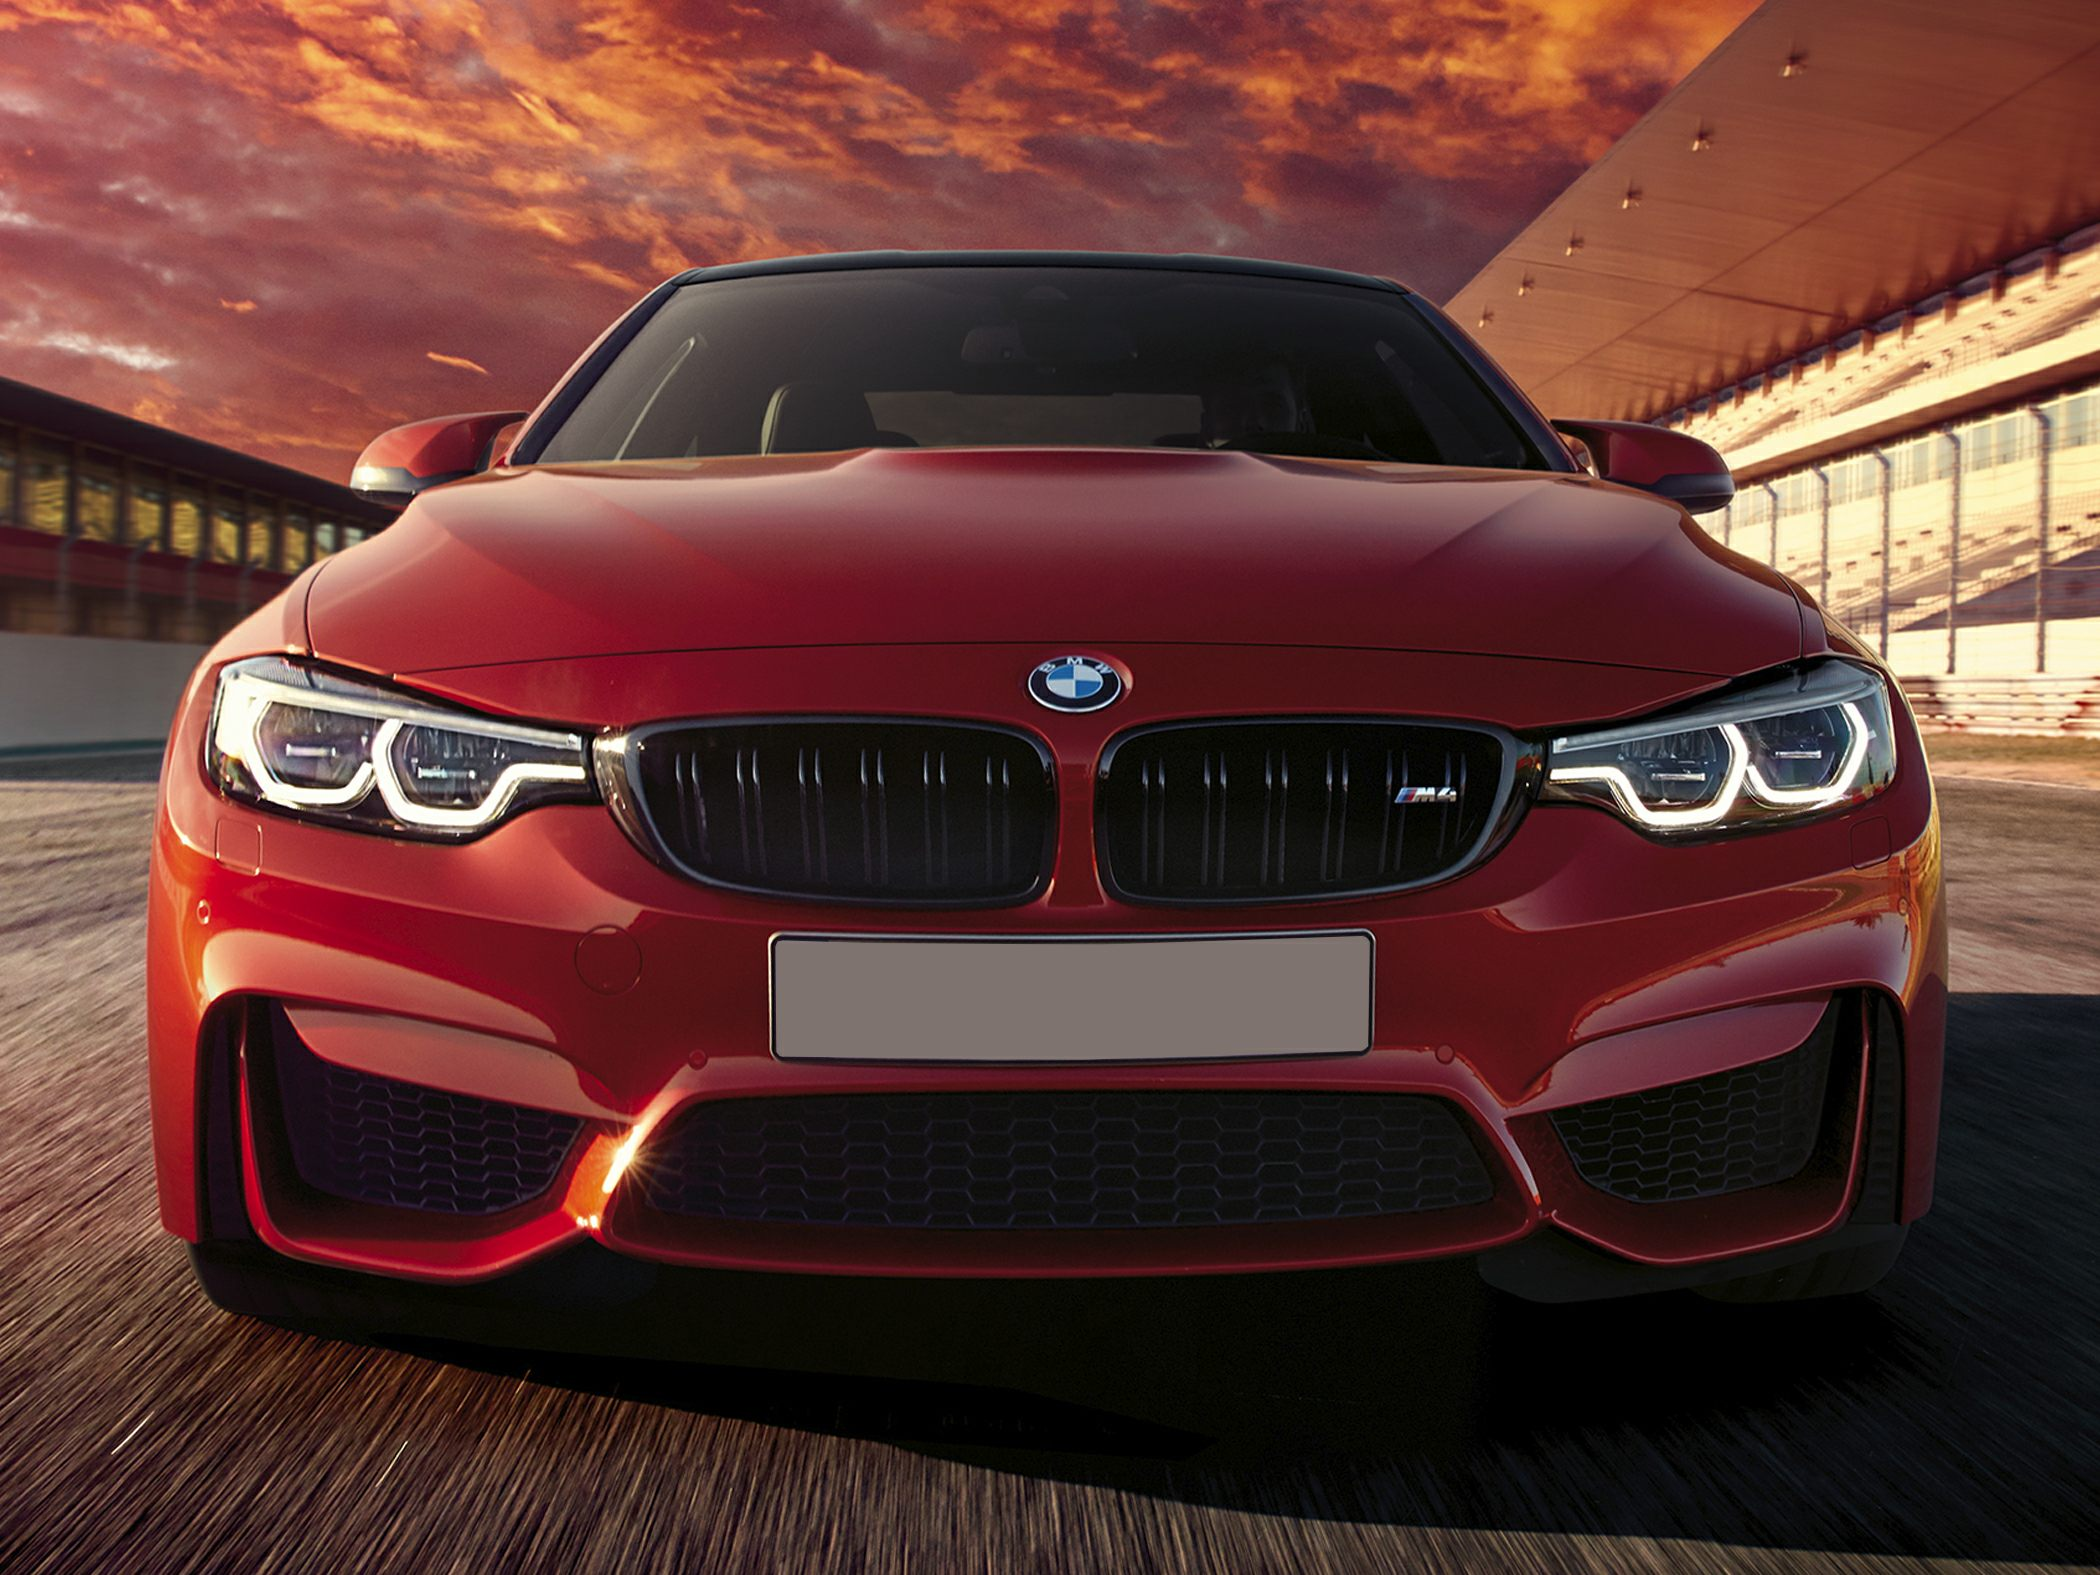 2018 Bmw M4 Deals Prices Incentives Leases Overview Carsdirect